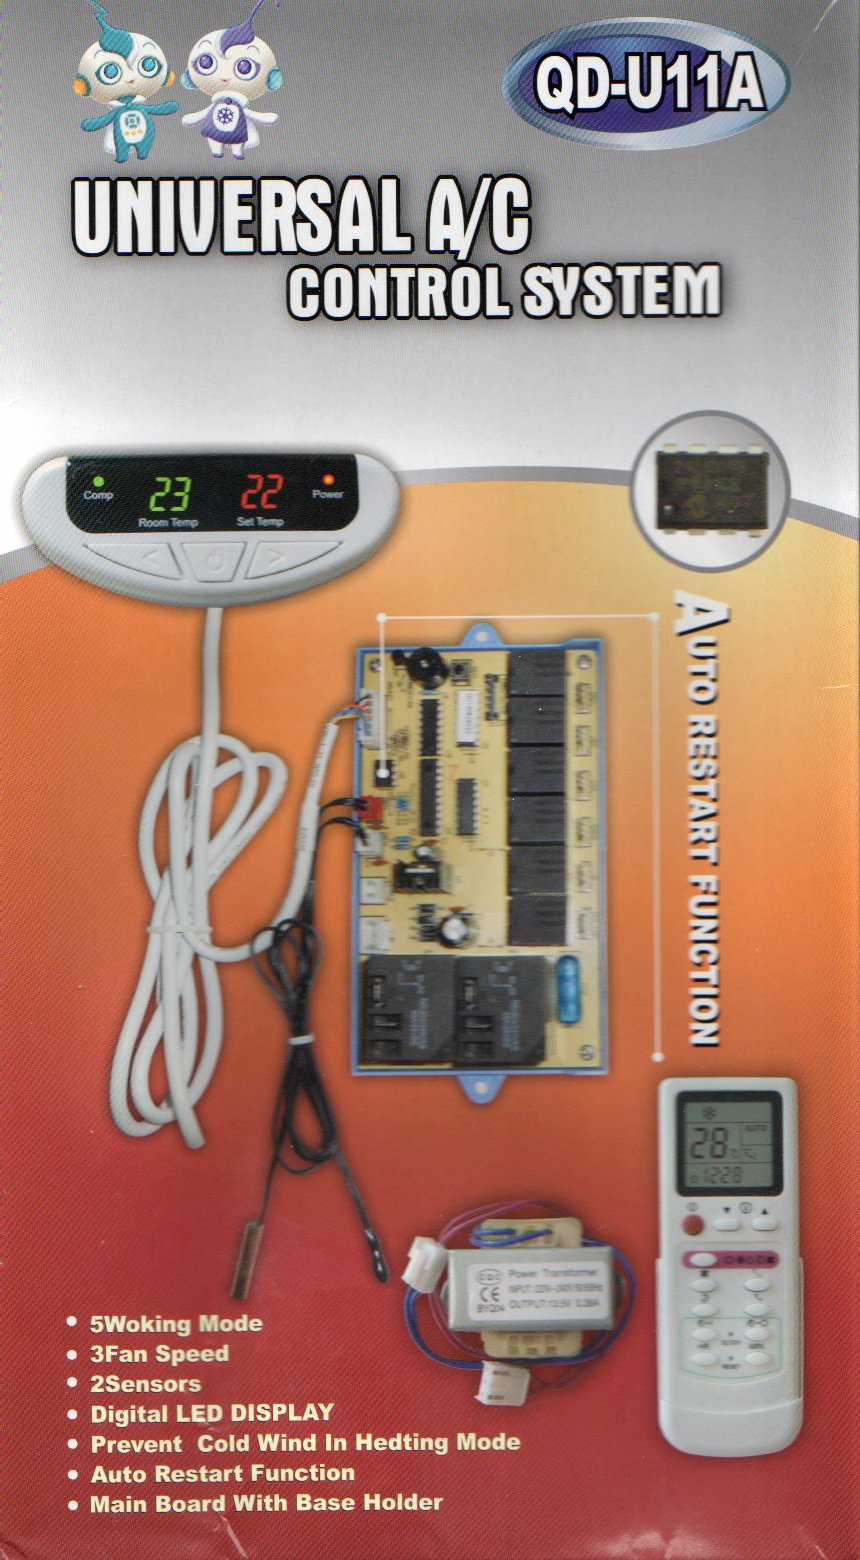 Universal AC Control System Kit with Wireless Remote & Sensors